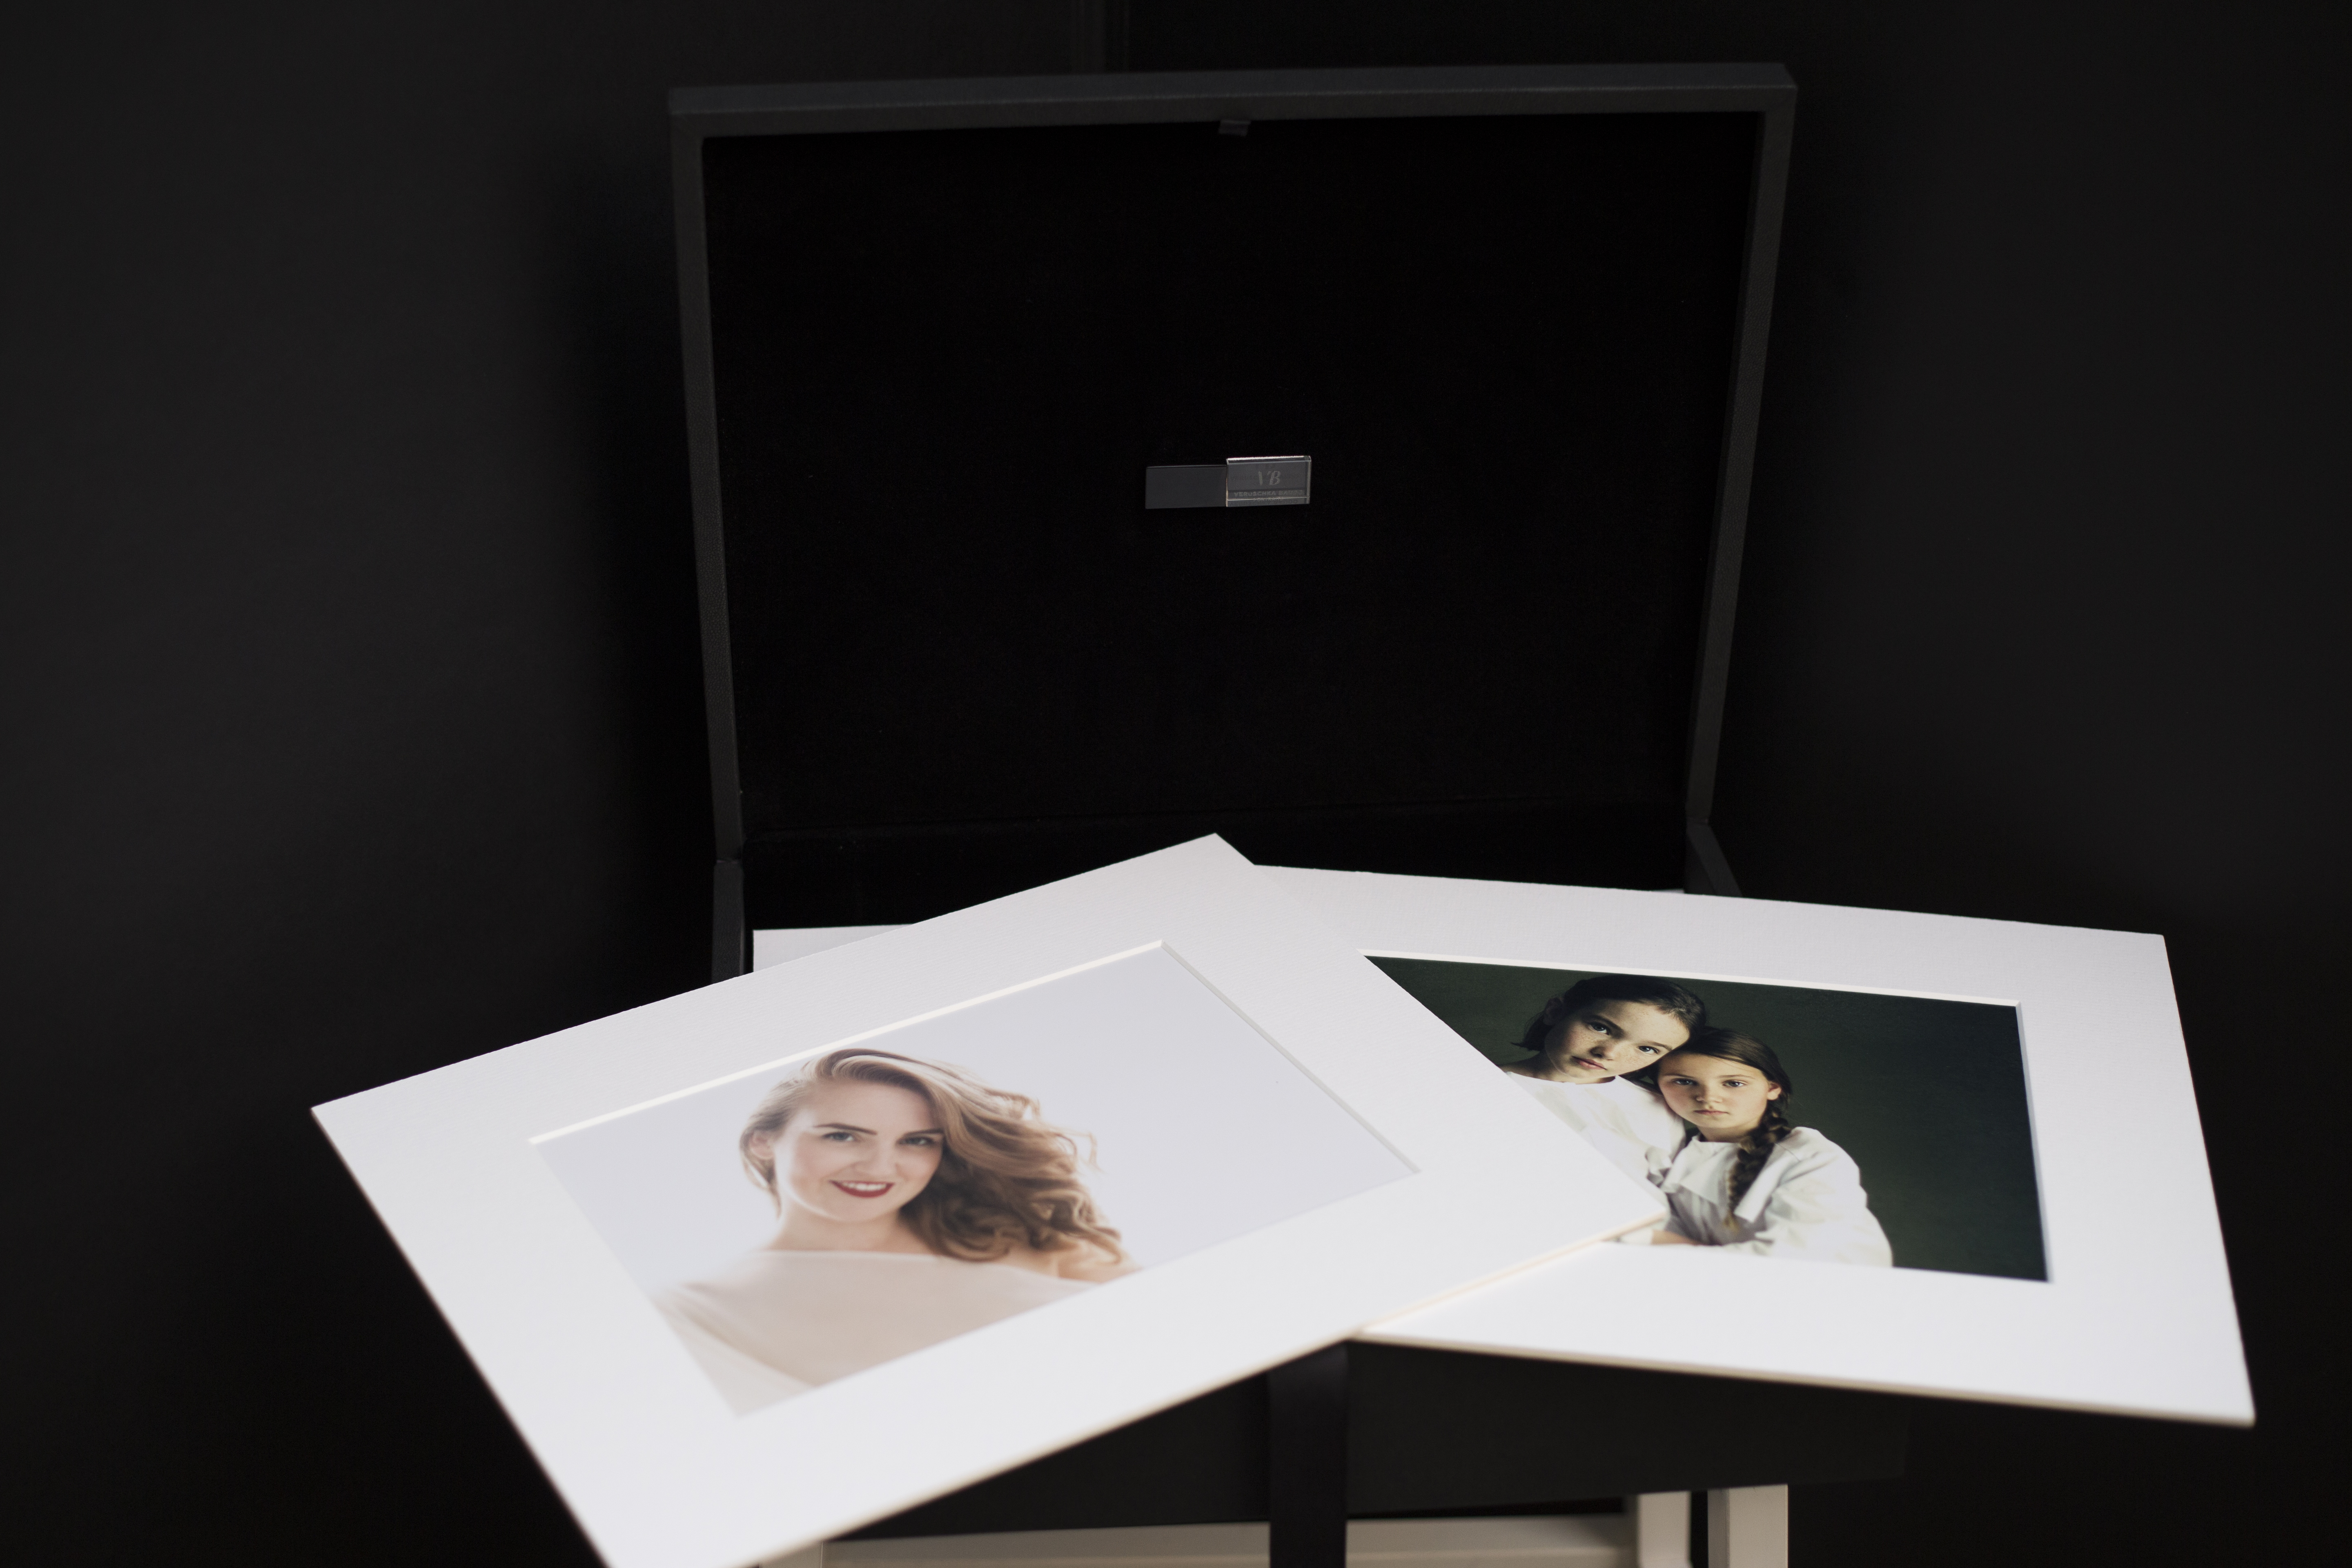 Printing images with Veruschka Baudo